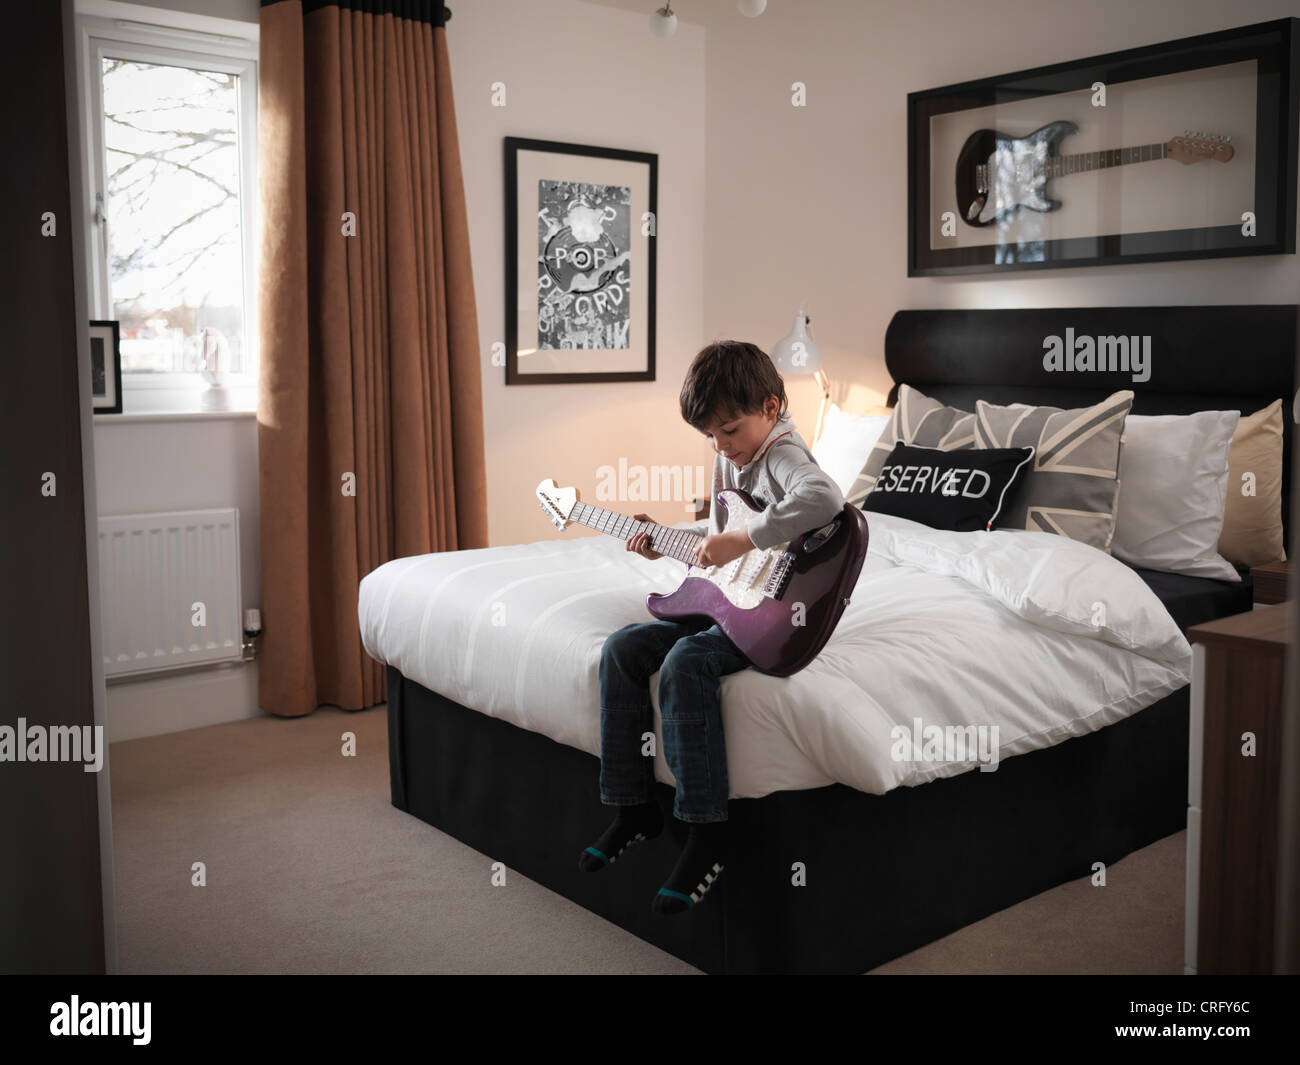 Boy playing guitar in bedroom - Stock Image